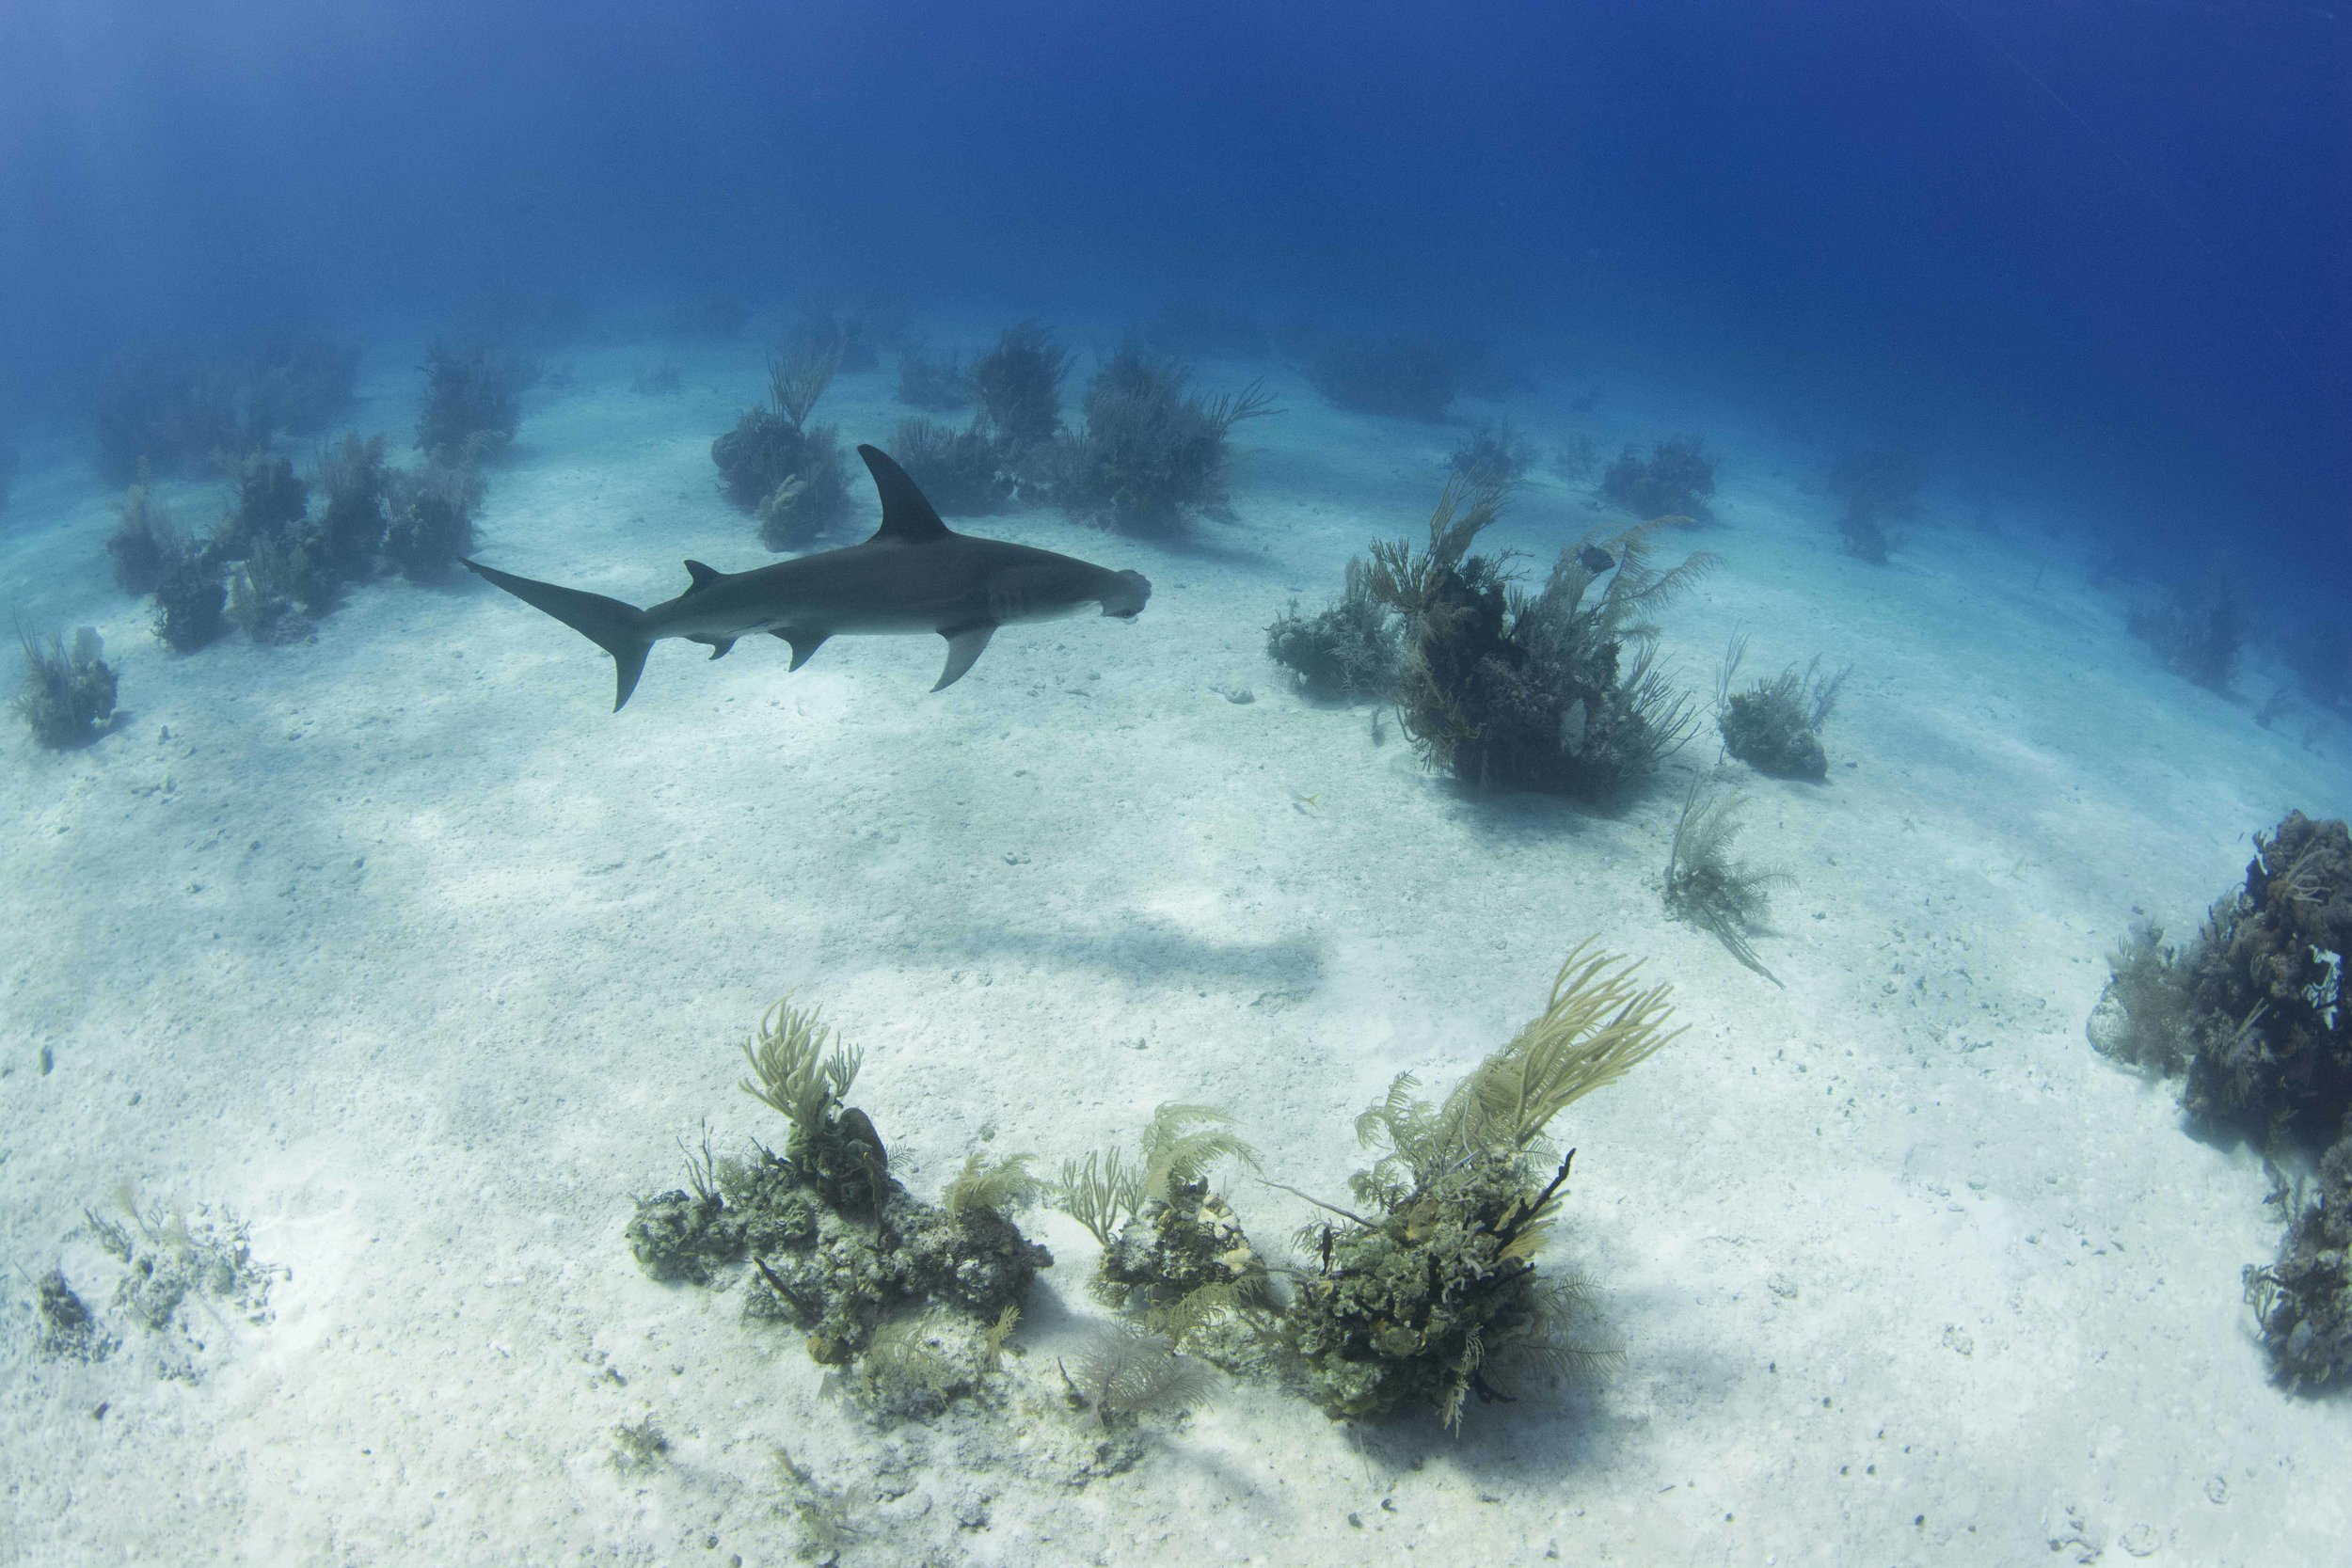 During this one dive, two individual hammerheads made regular passes.